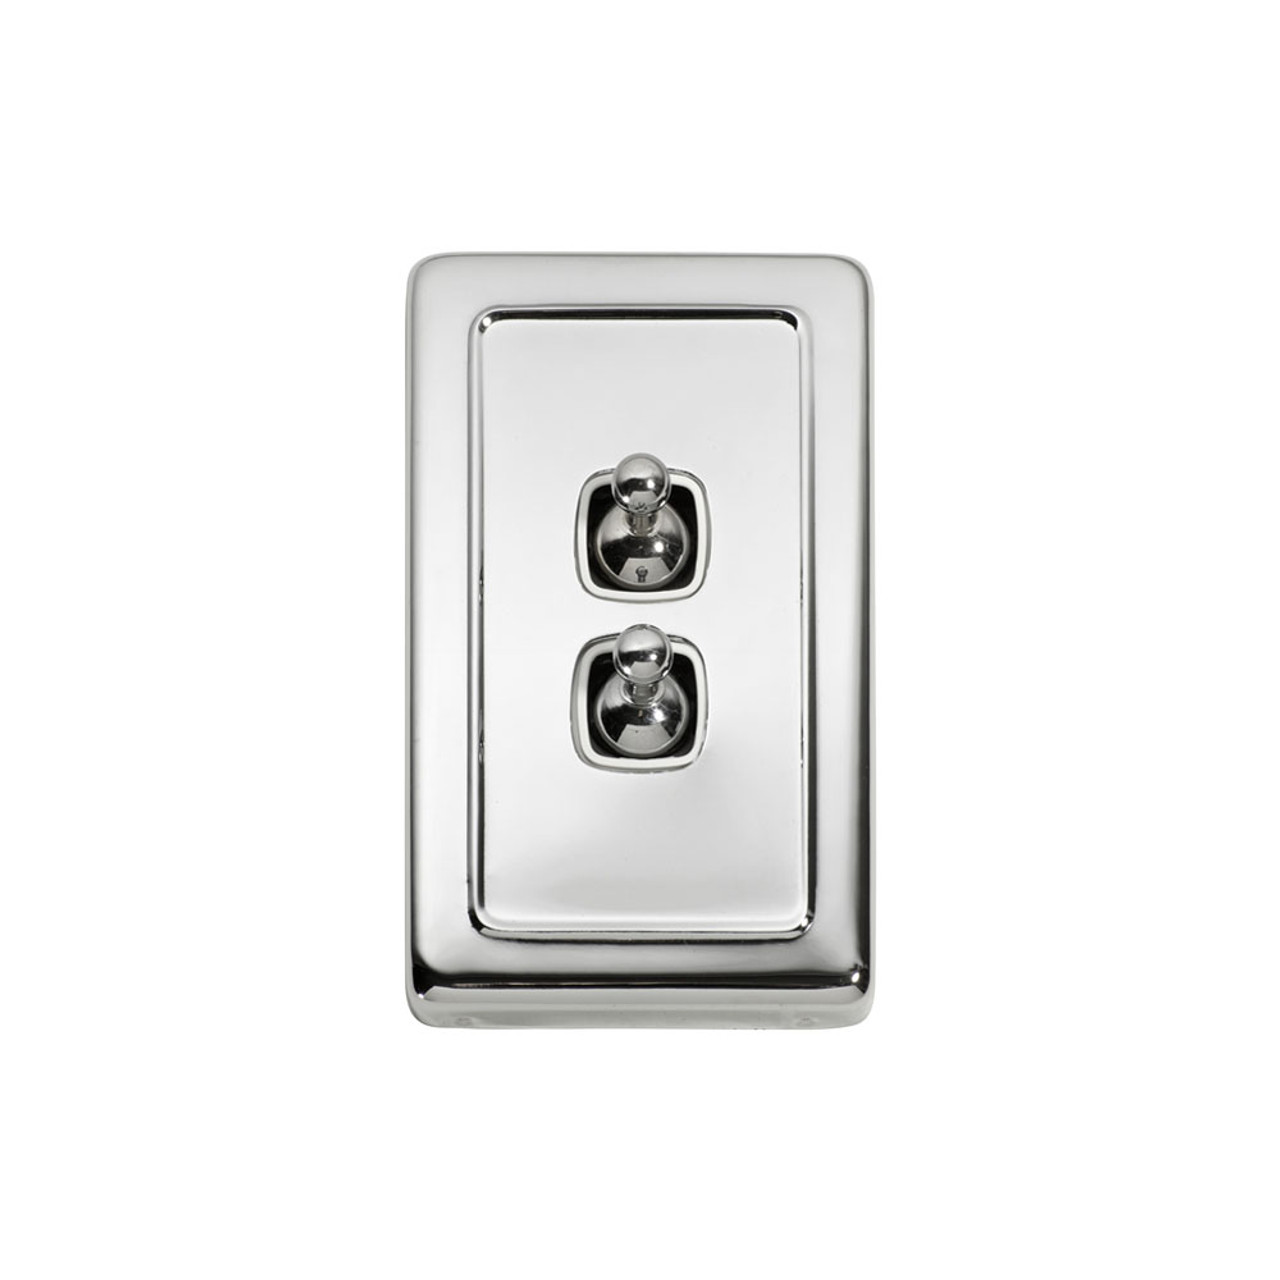 2 Gang Flat Plate Heritage Light Switches - Chrome Toggle